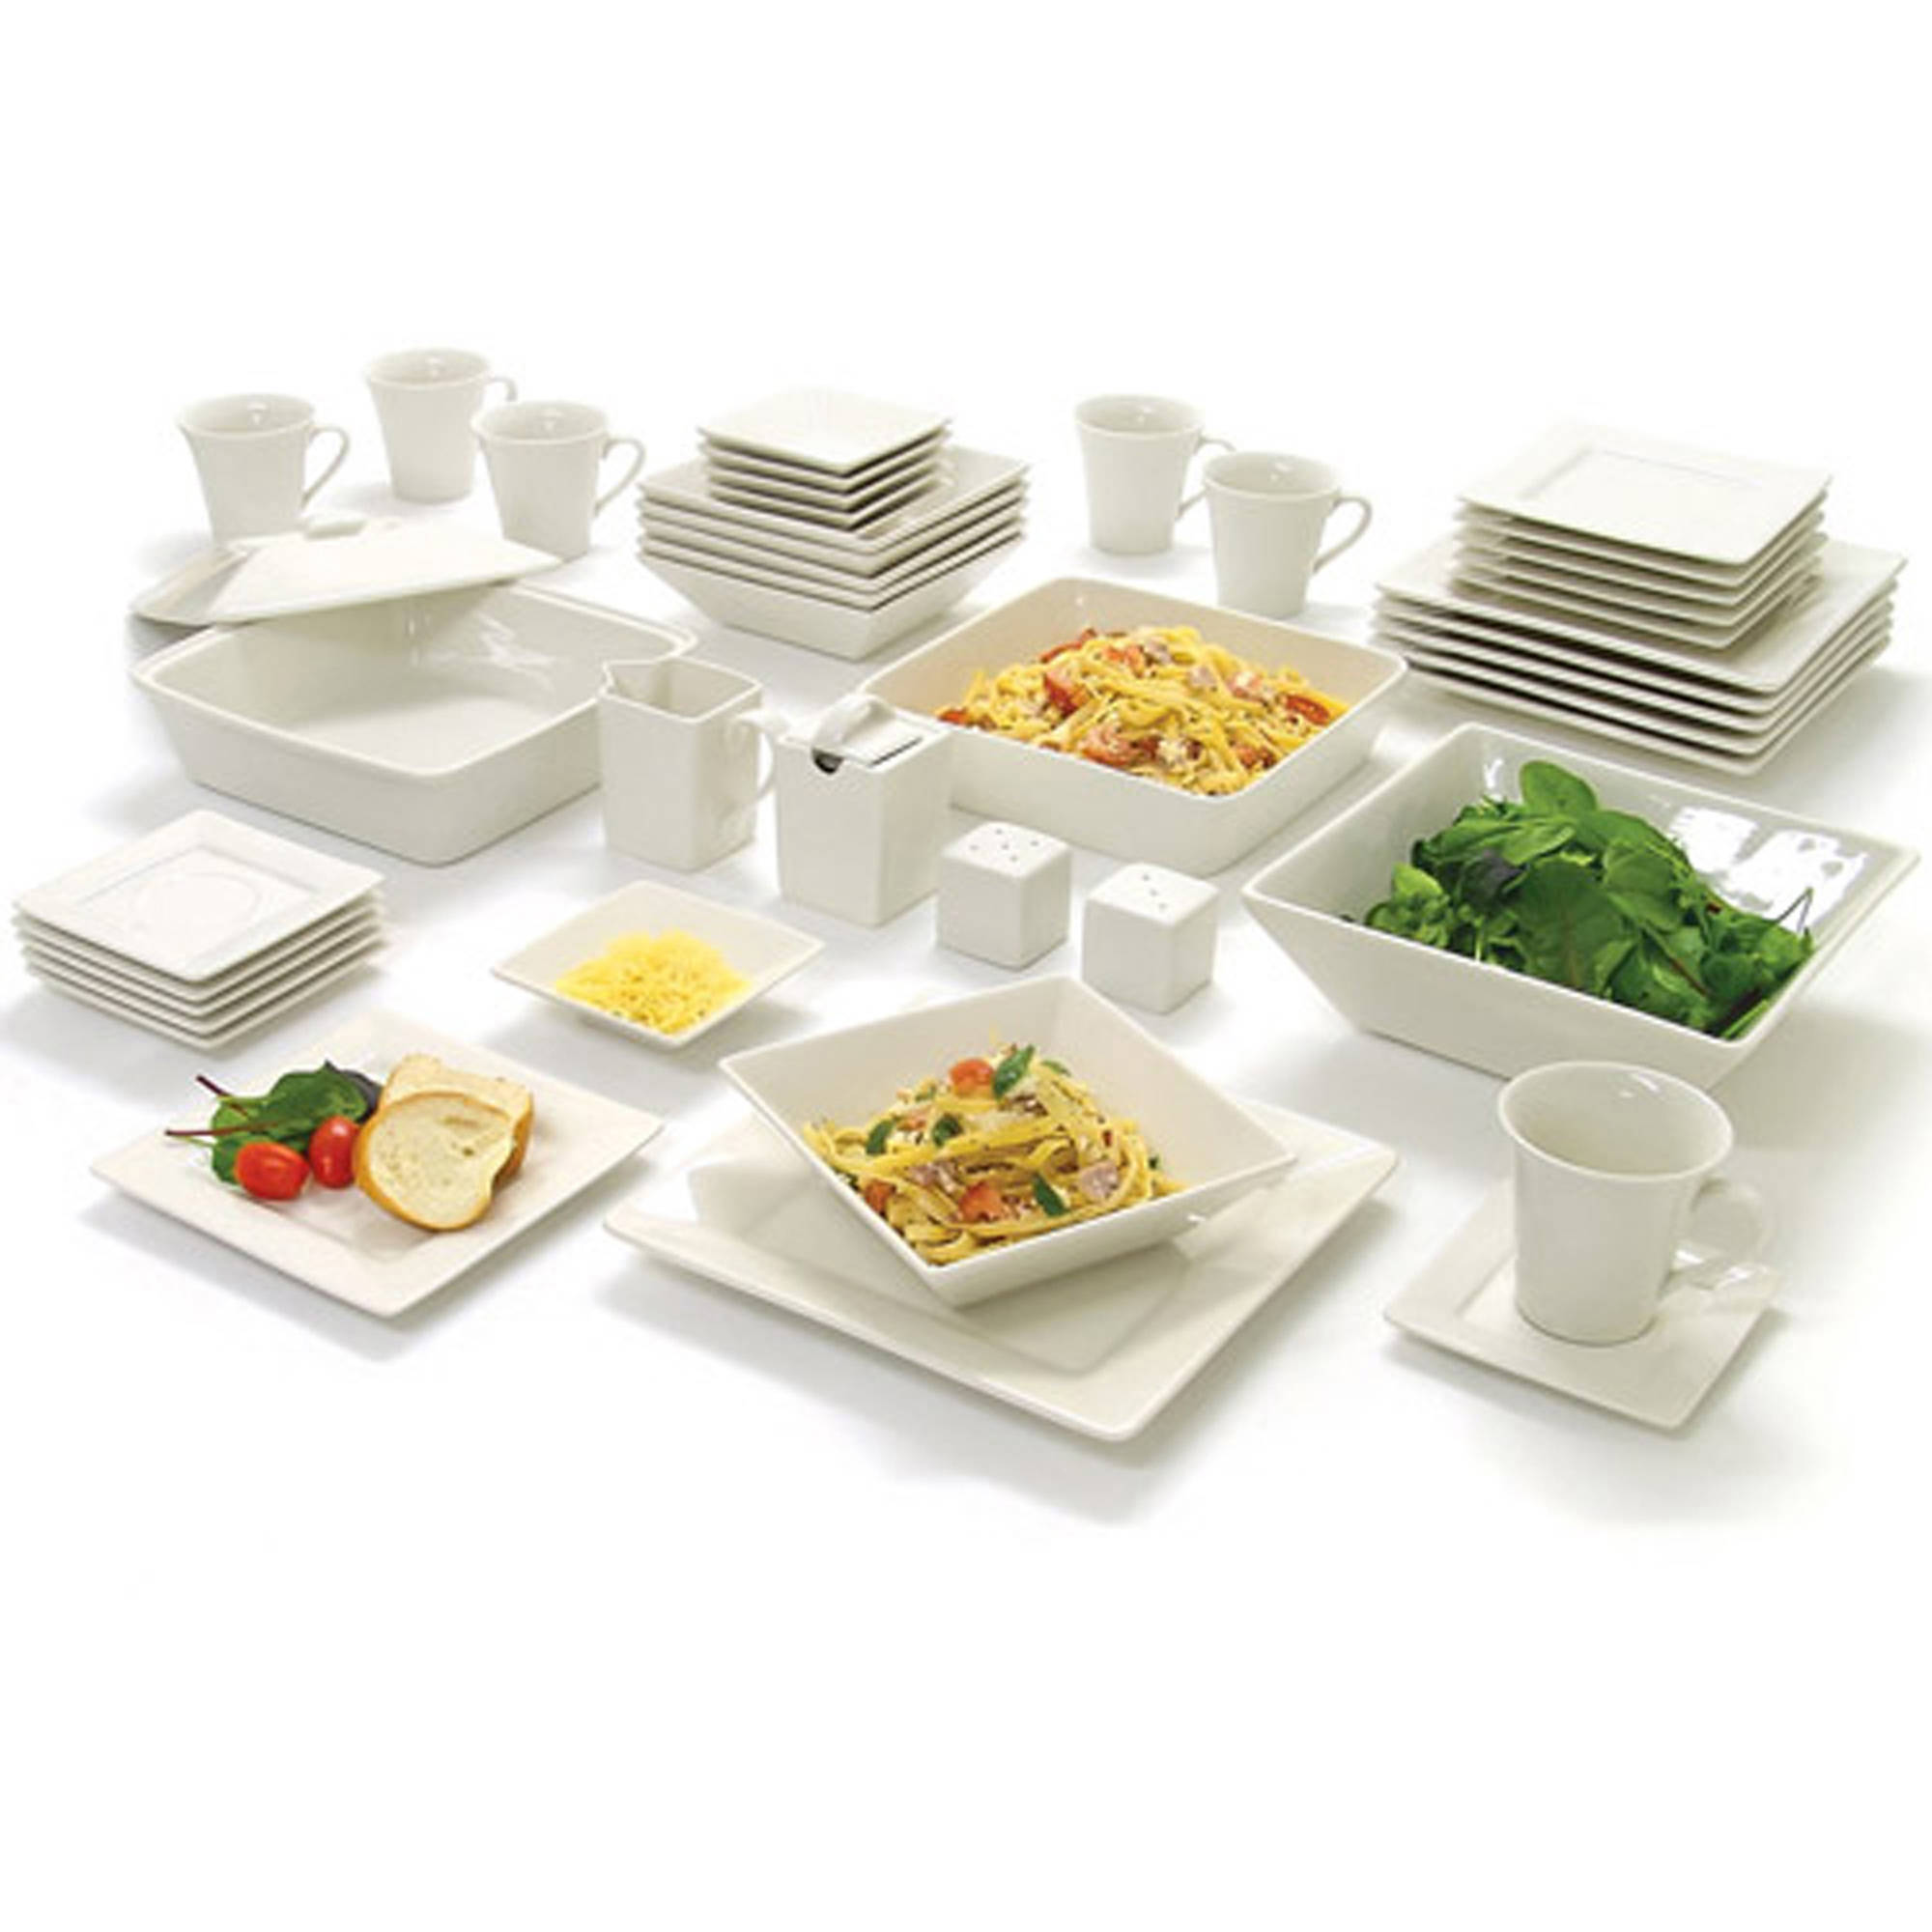 10 Strawberry Street Nova Square Banquet 45-Piece Dinnerware Set  sc 1 st  eBay & 10 Strawberry Street Nova Square Banquet 45-Piece Dinnerware Set ...